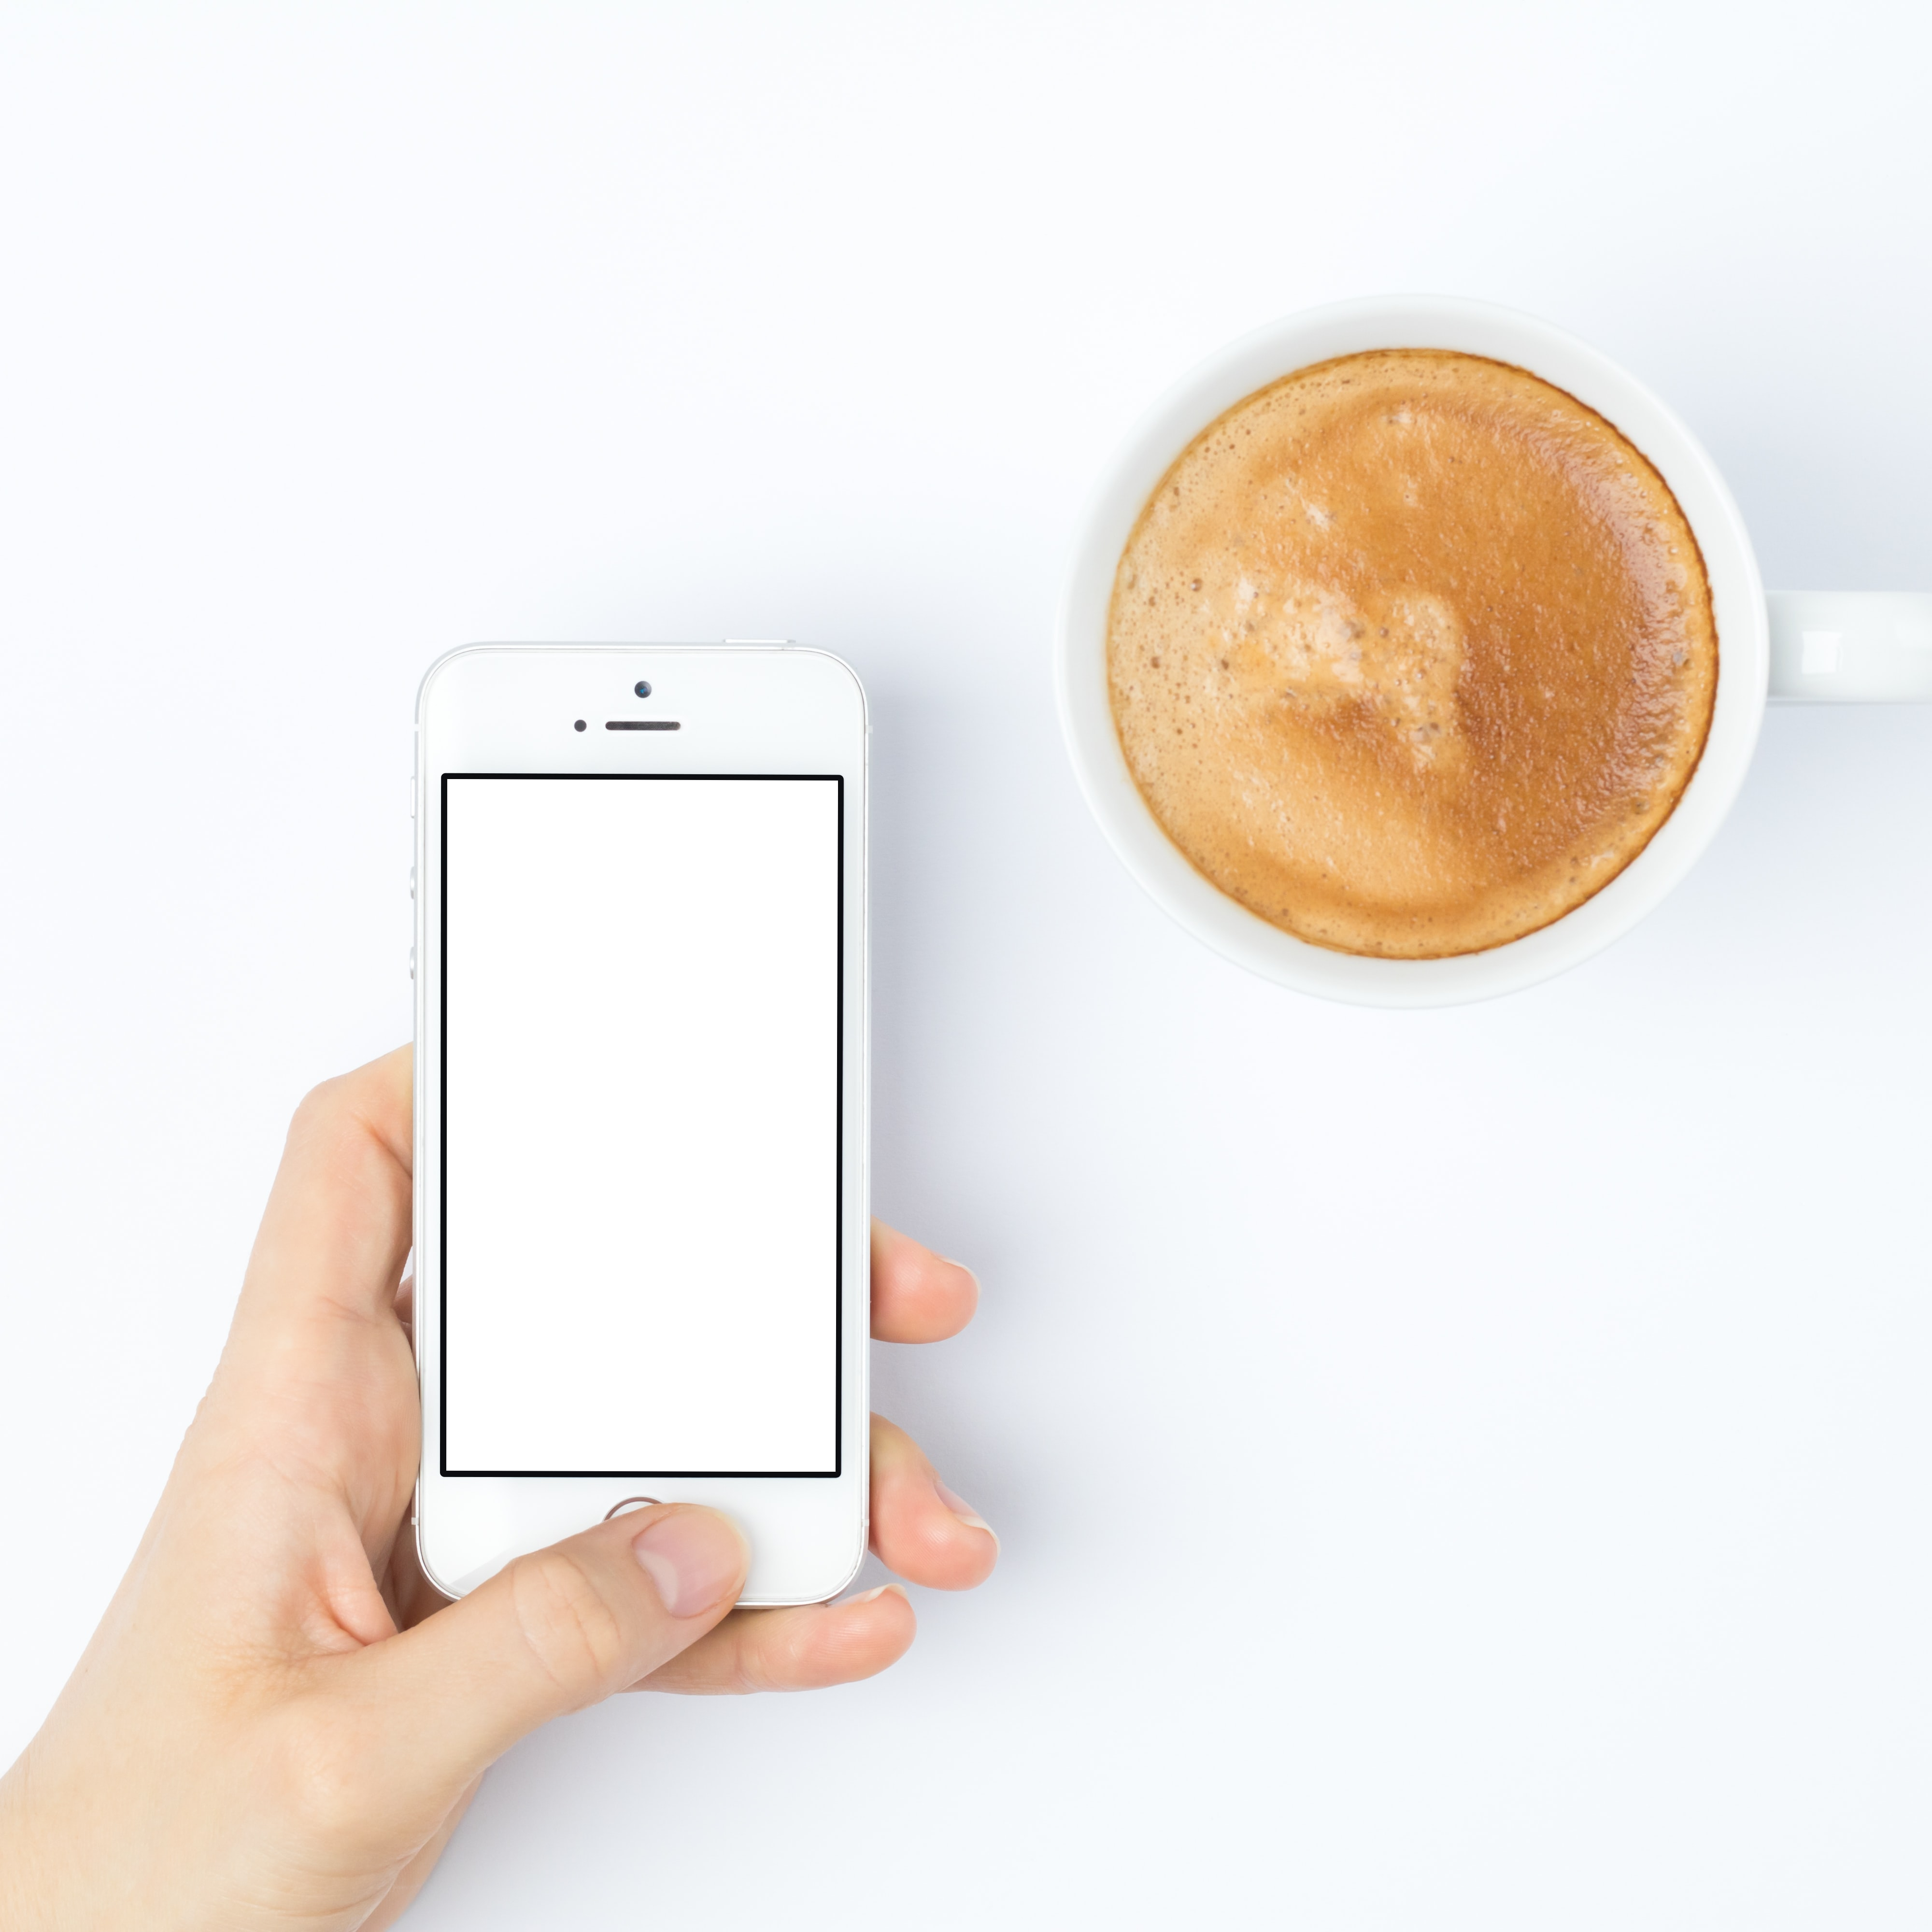 person silver iPhone 5s beside white ceramic mug